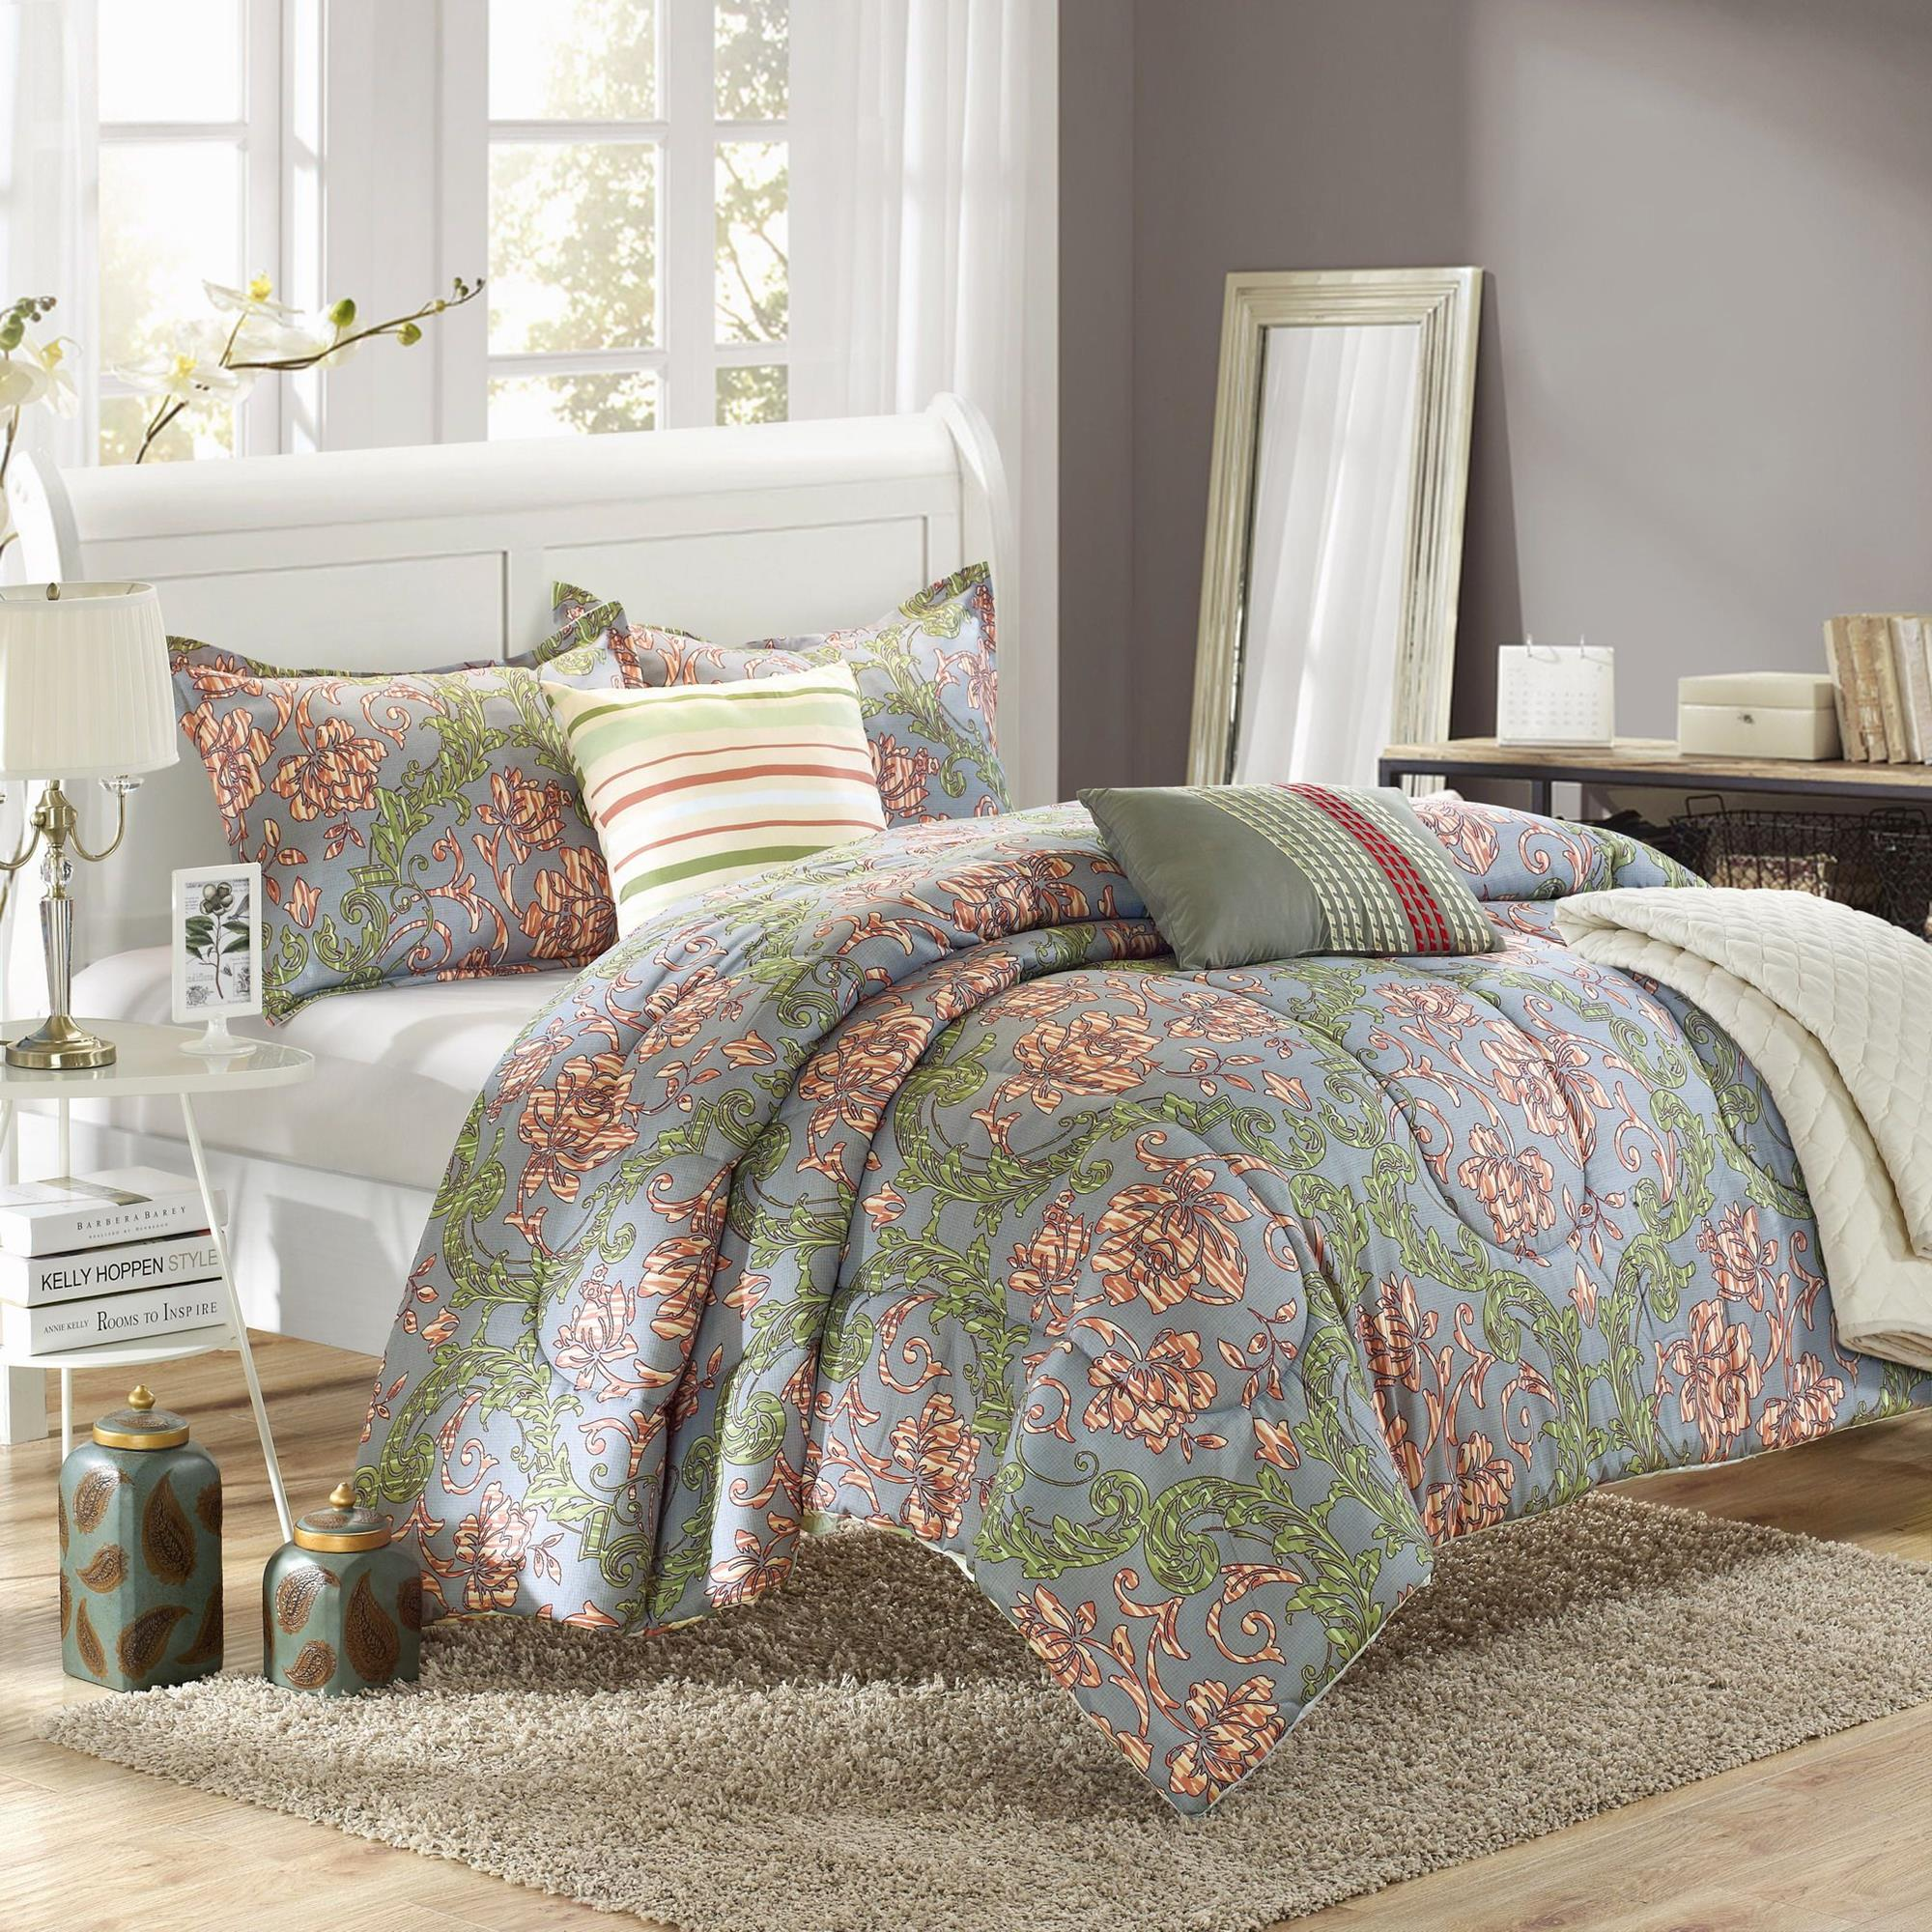 Chic Home Antica Floral Greens & Rose 10 Piece Embroidery Comforter Bed In A Bag Set at Sears.com